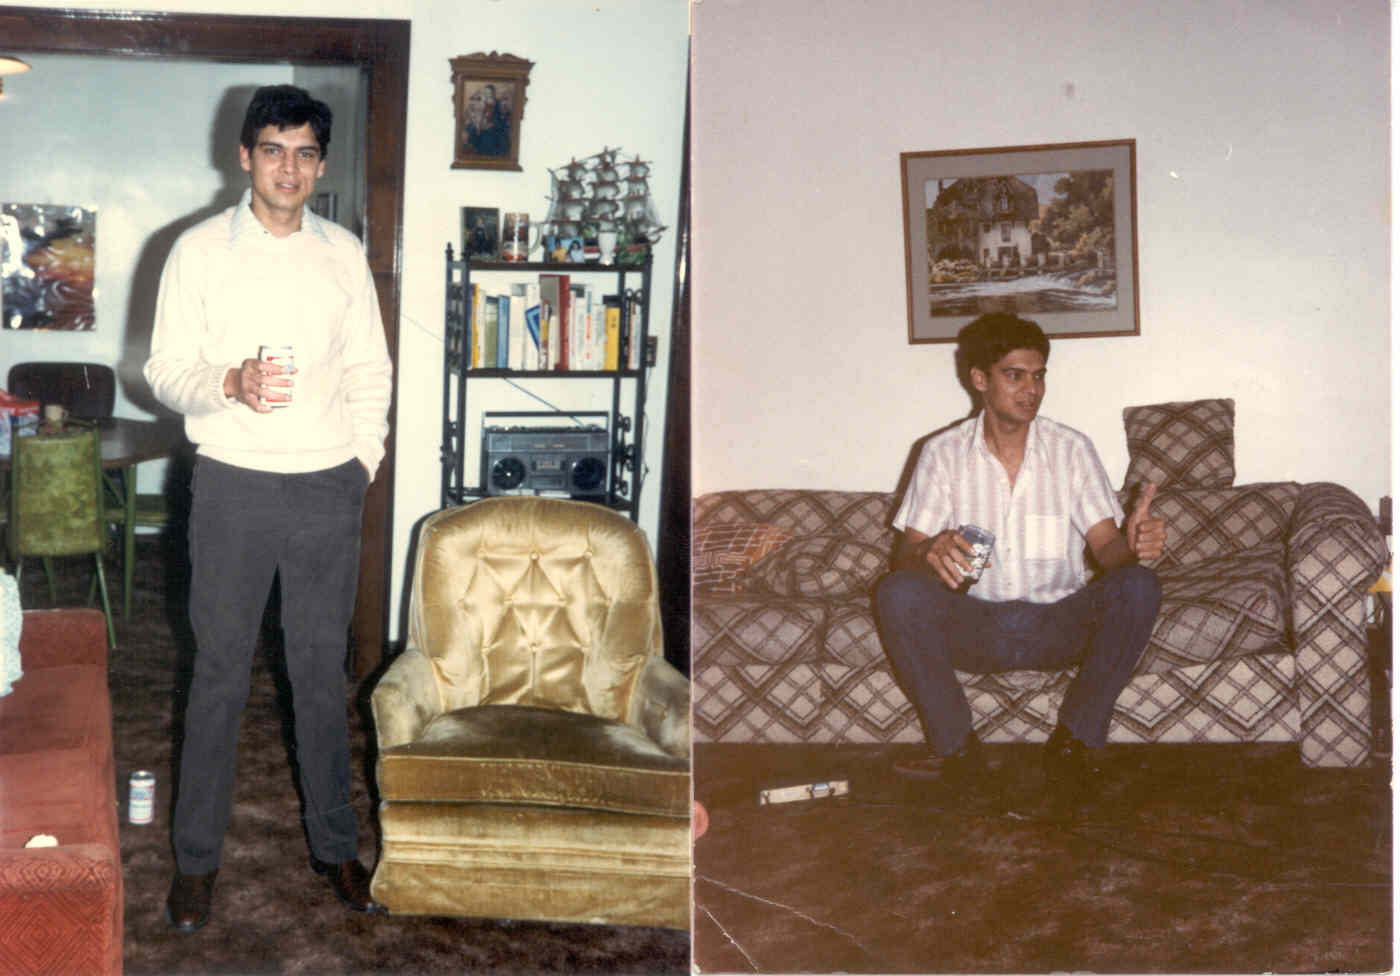 Click to enlarge - Myself at 27 yrs during senior year at the University of Illinois